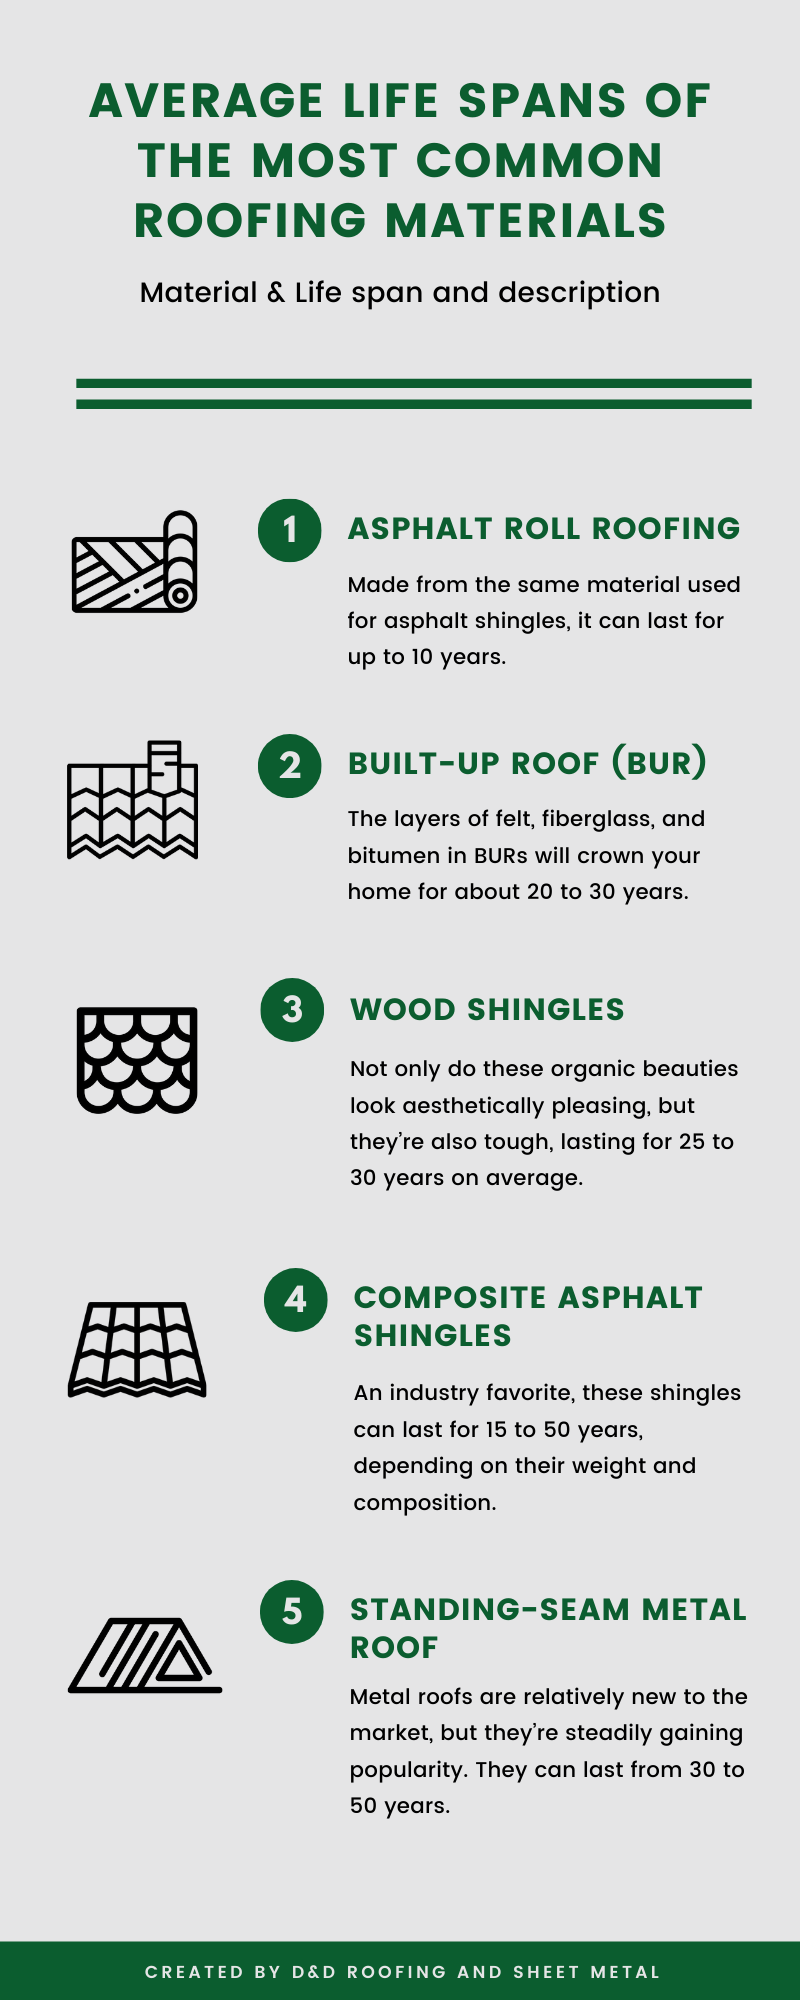 The average life spans of the most common roofing materials